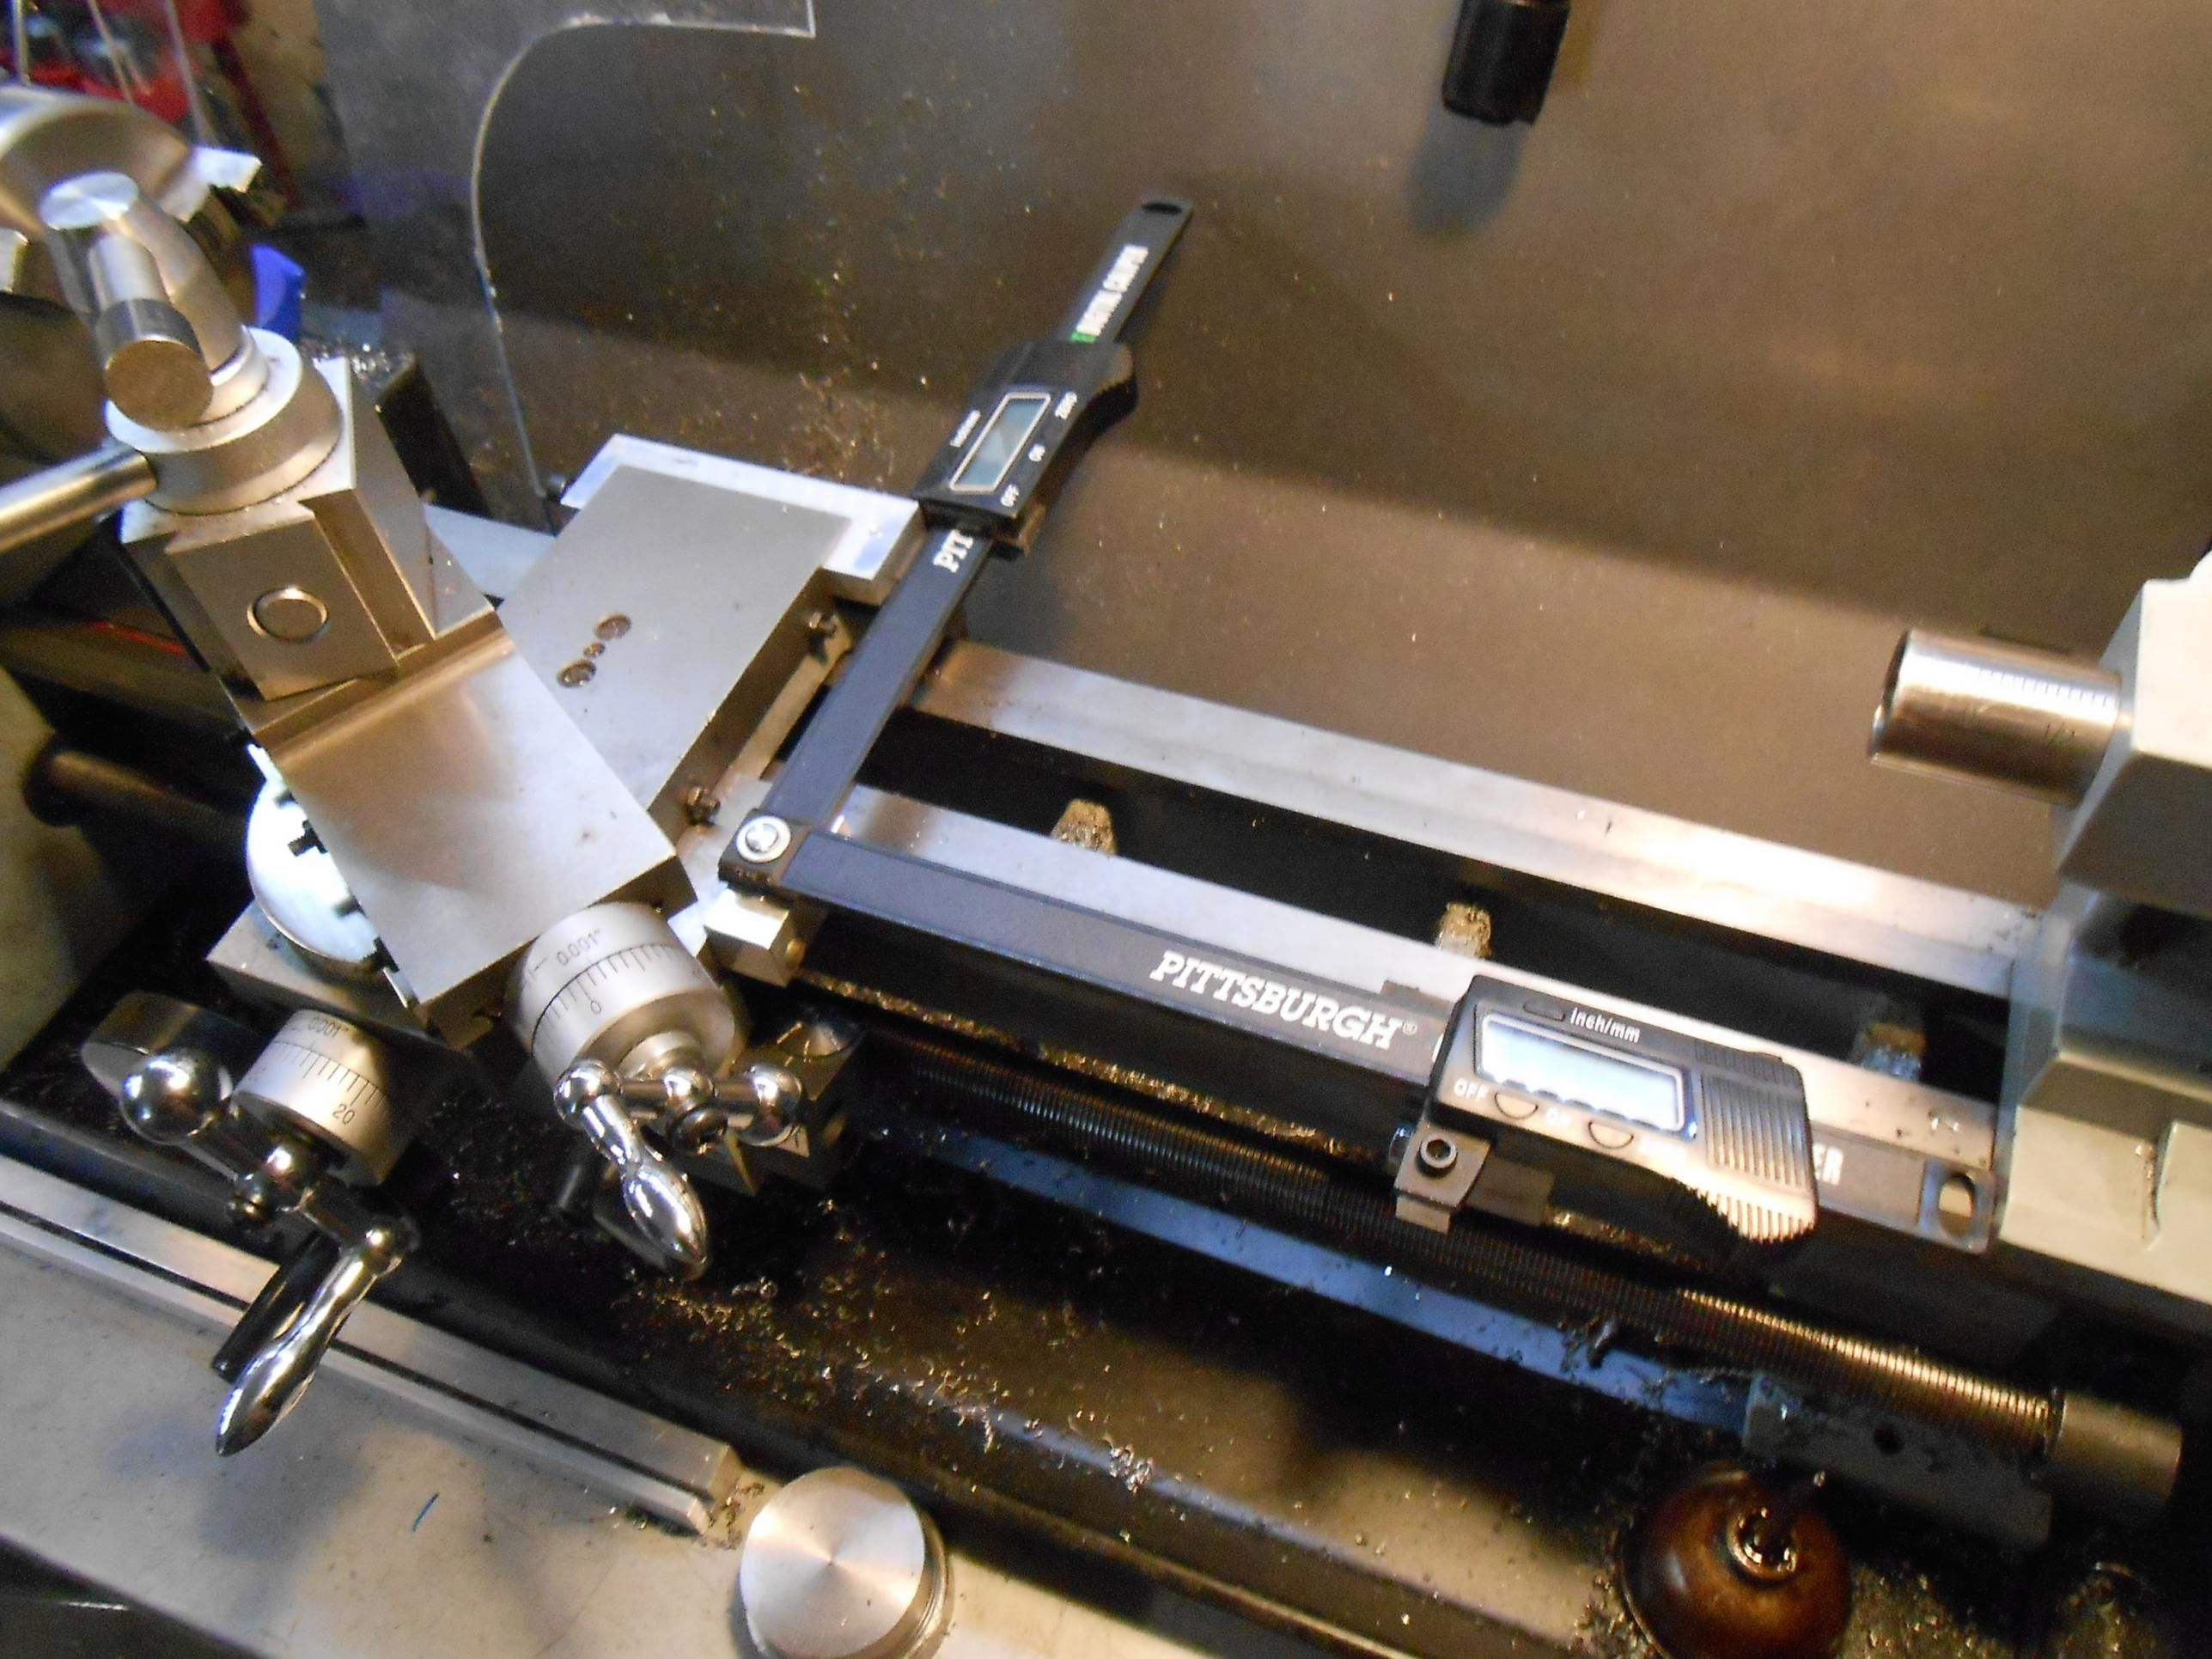 Poor Mans Lathe DRO's by bobs409 - Just a shot of some cheap